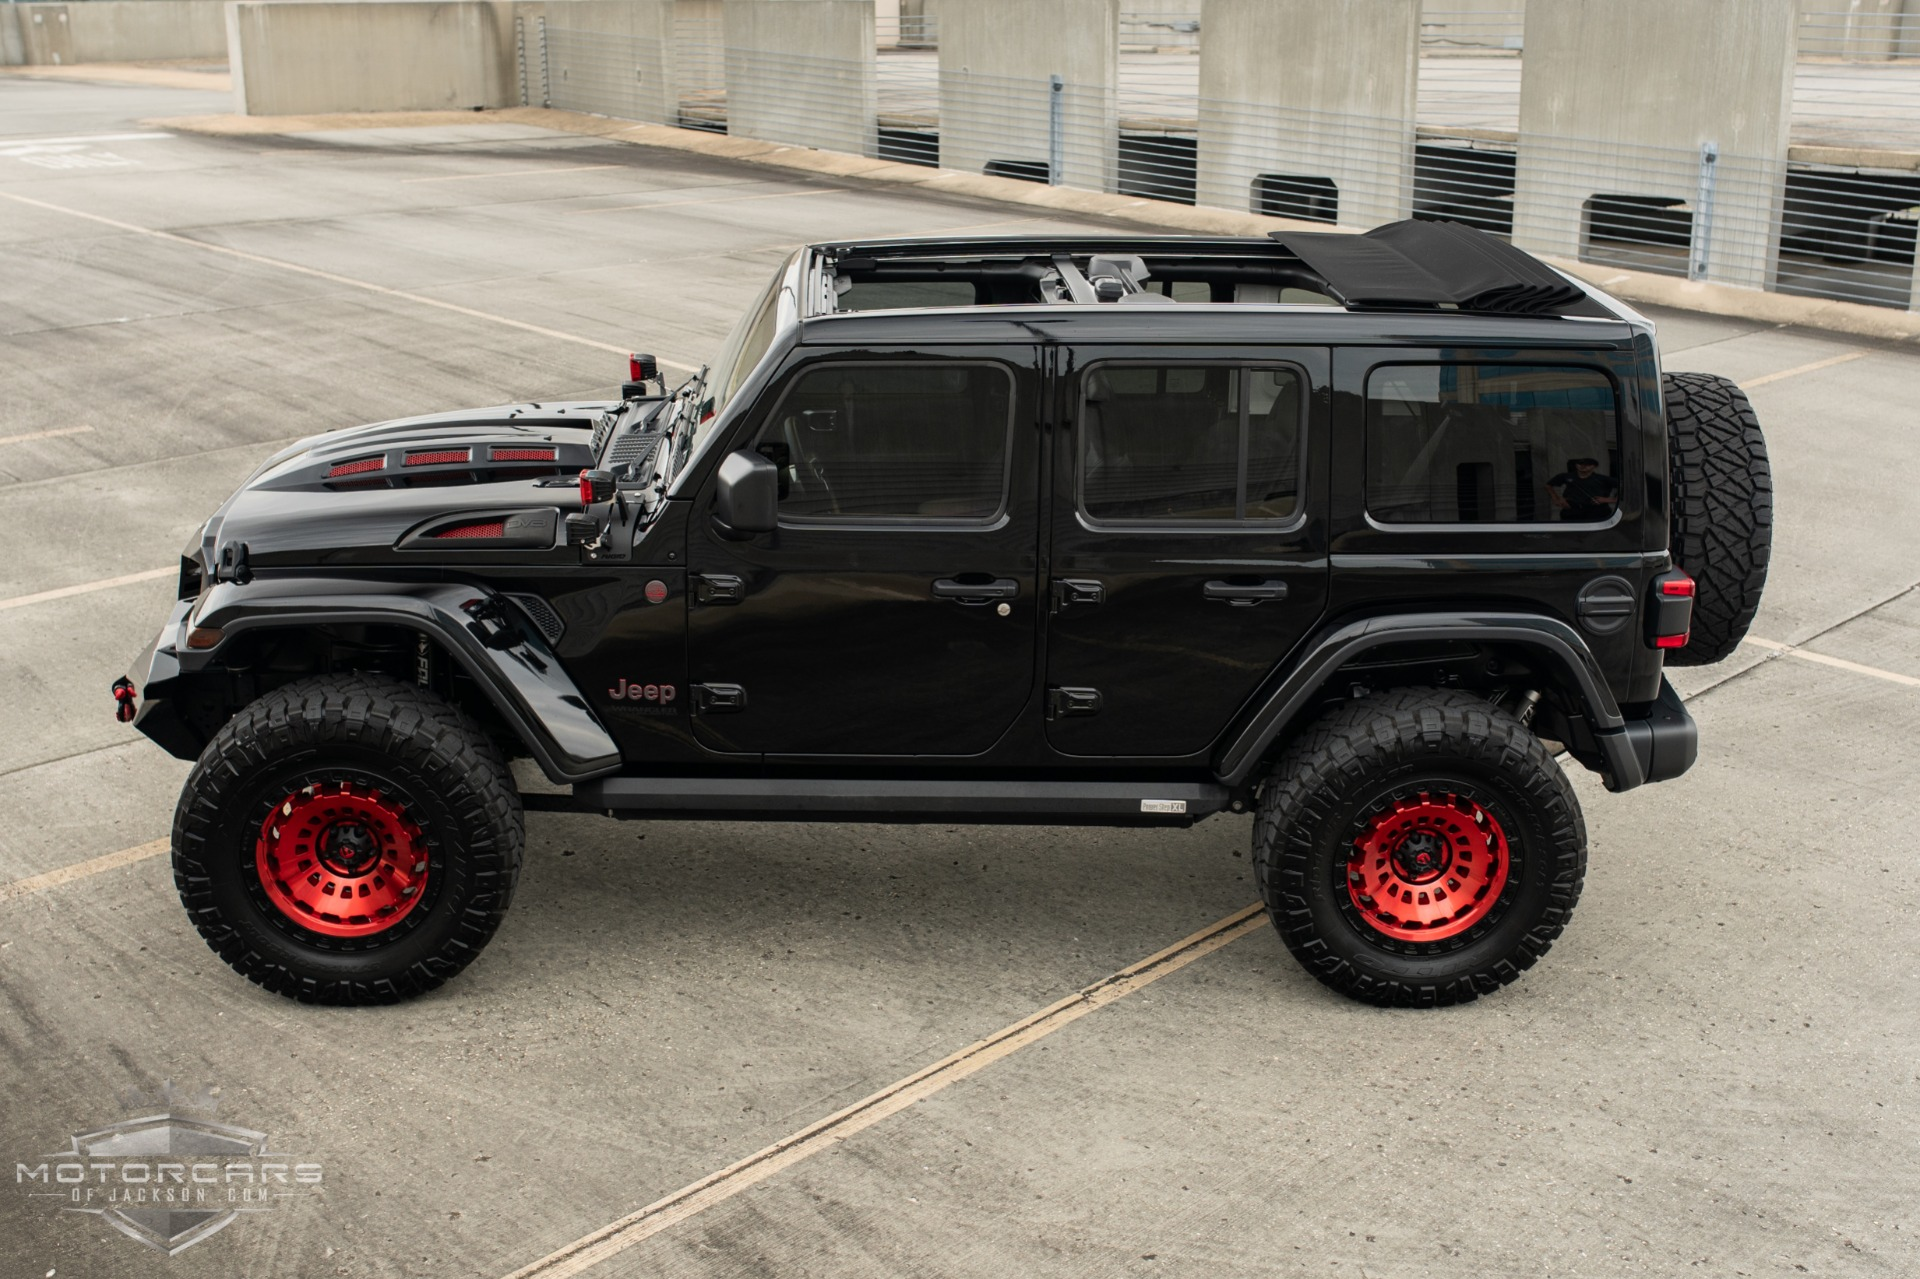 Used-2019-Jeep-Wrangler-Unlimited-Rubicon-for-sale-Jackson-MS